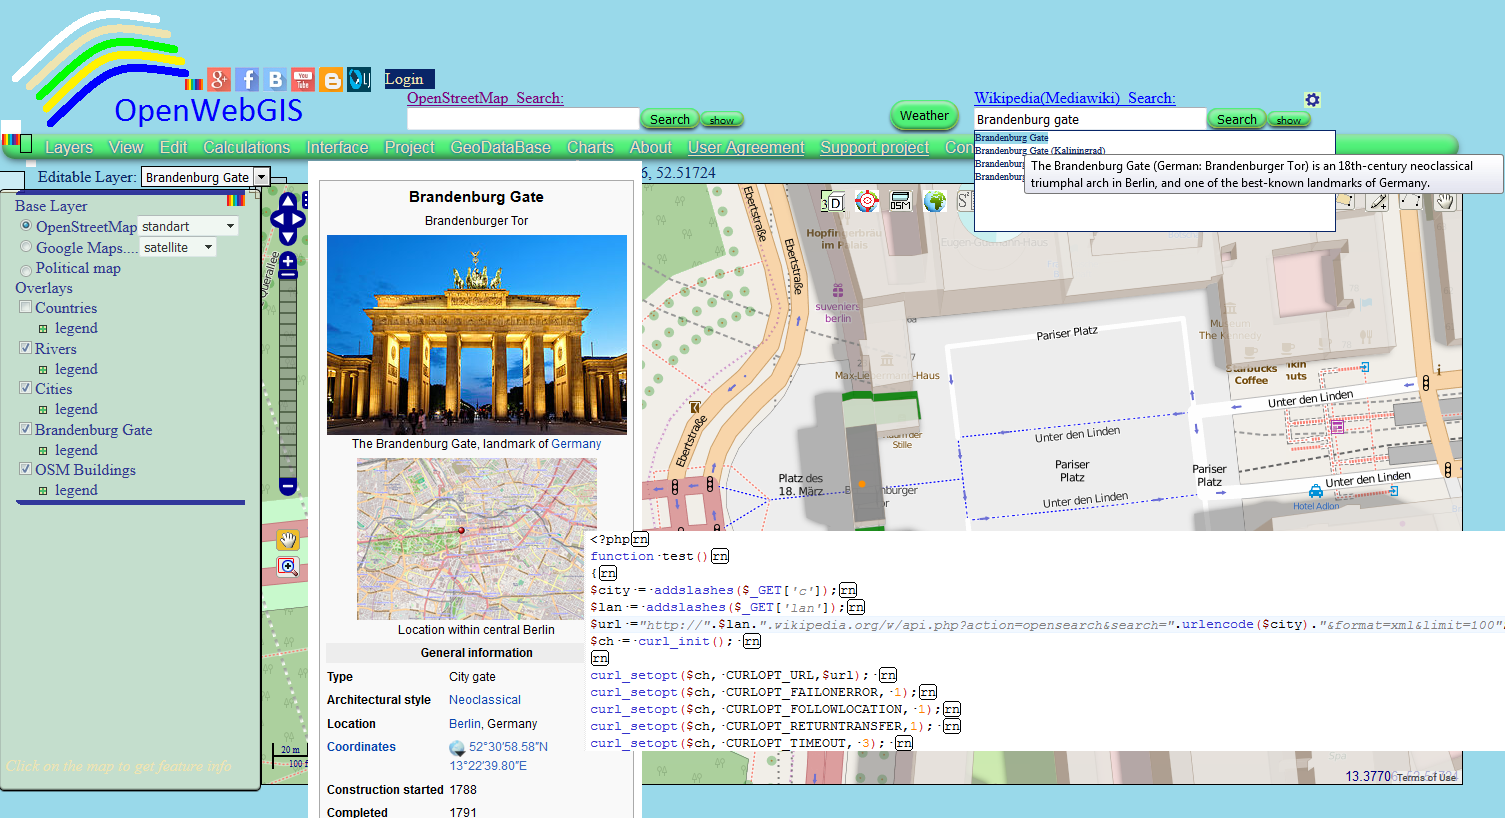 OpenWebGIS is free online GIS: Integrating your map service ... on world maps online, paper maps online, copies of deeds online, birth certificates online, texas plat maps online, gps maps online, 3d maps online, voting online, internet maps online, library online, design maps online, geography maps online, land surveying maps online, washington maps online, business maps online, usgs maps online, kern county maps online, large map of us online, schools online, topo maps online,